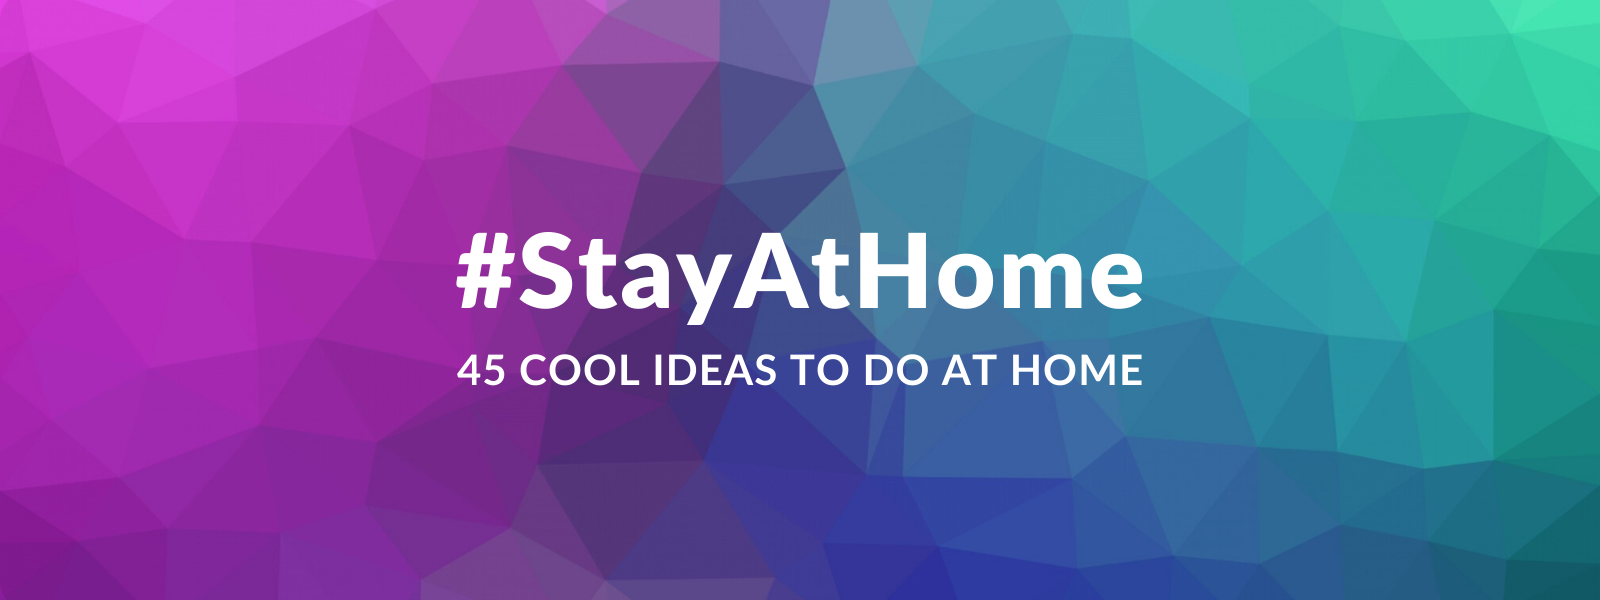 #stayathome 45 Cool Ideas To Do At Home